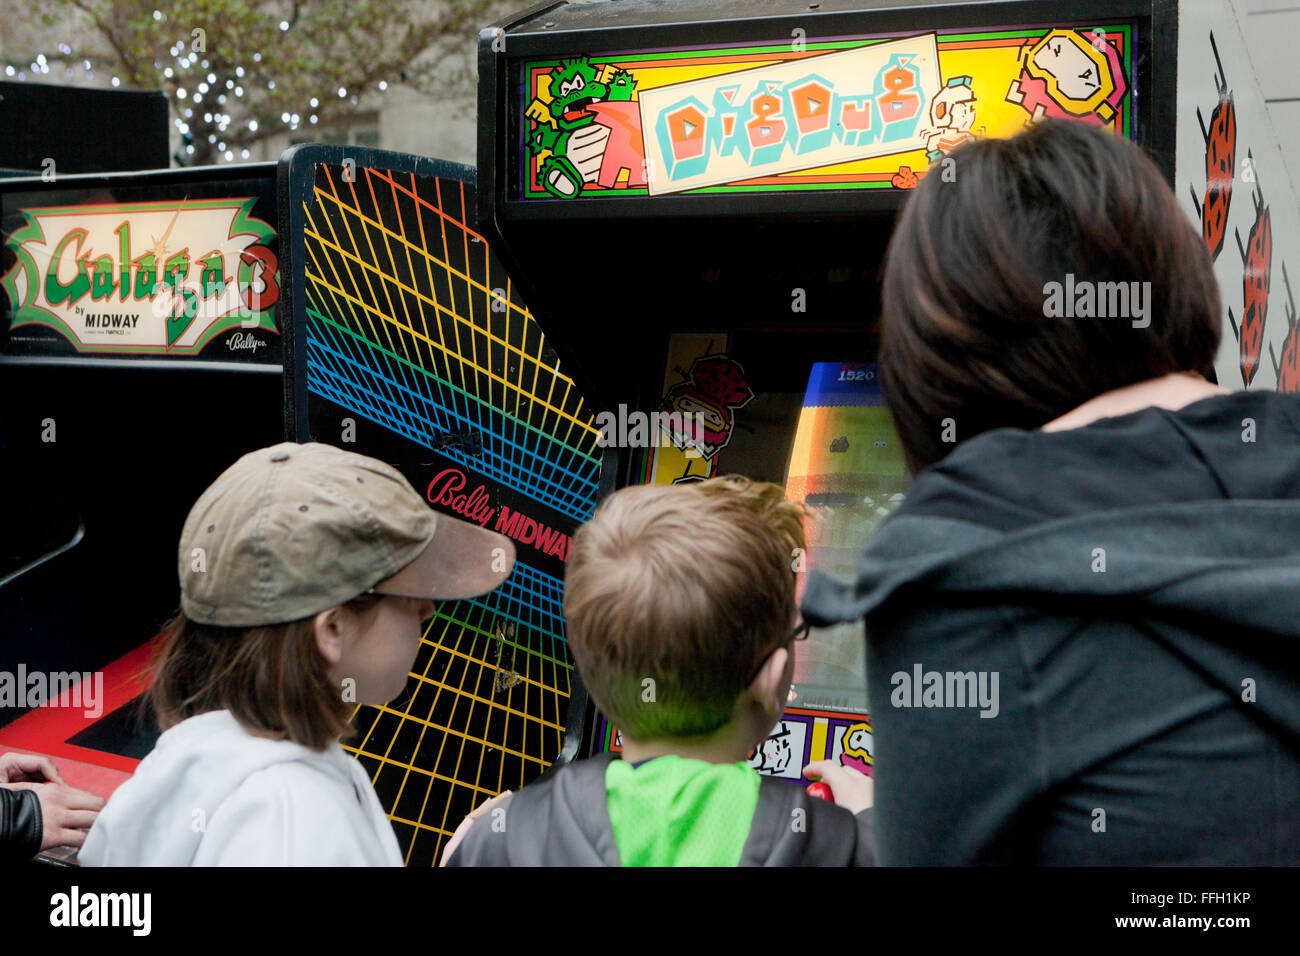 Children playing Dig Dug arcade video game - USA - Stock Image